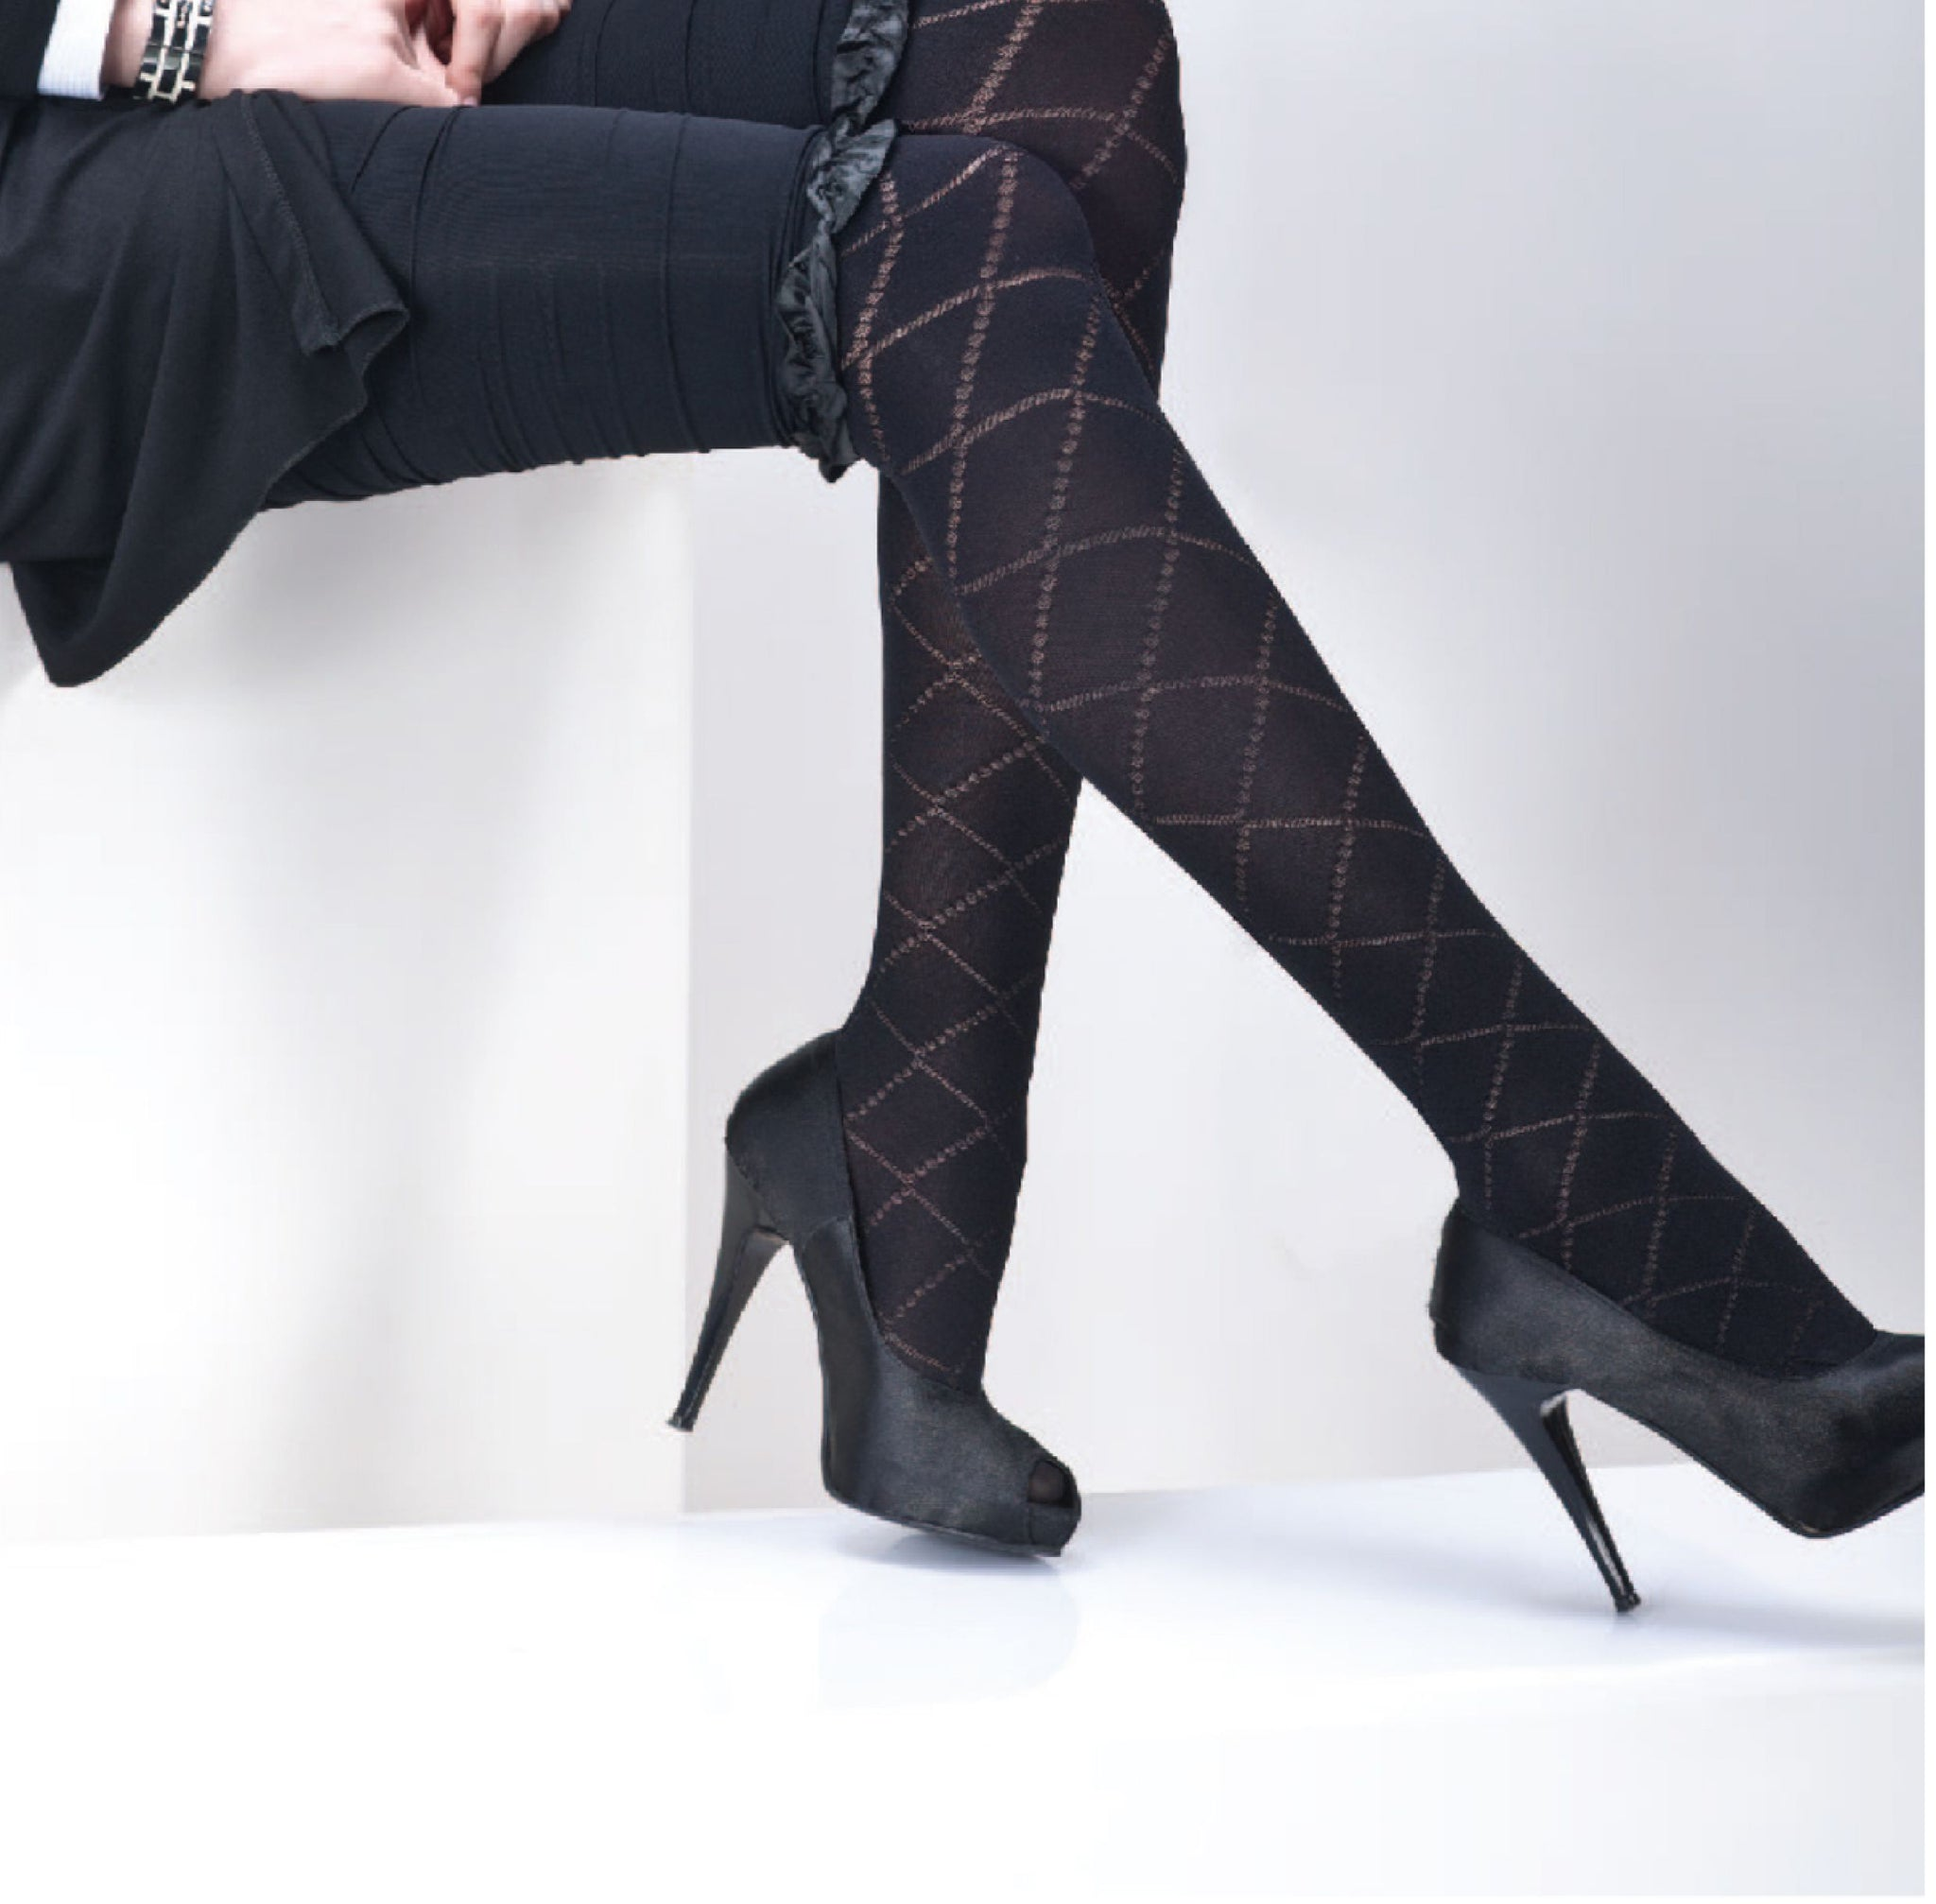 Fashion Party Style, Opaque 80 Den Patterned, Reinforced Toe Pantyhose